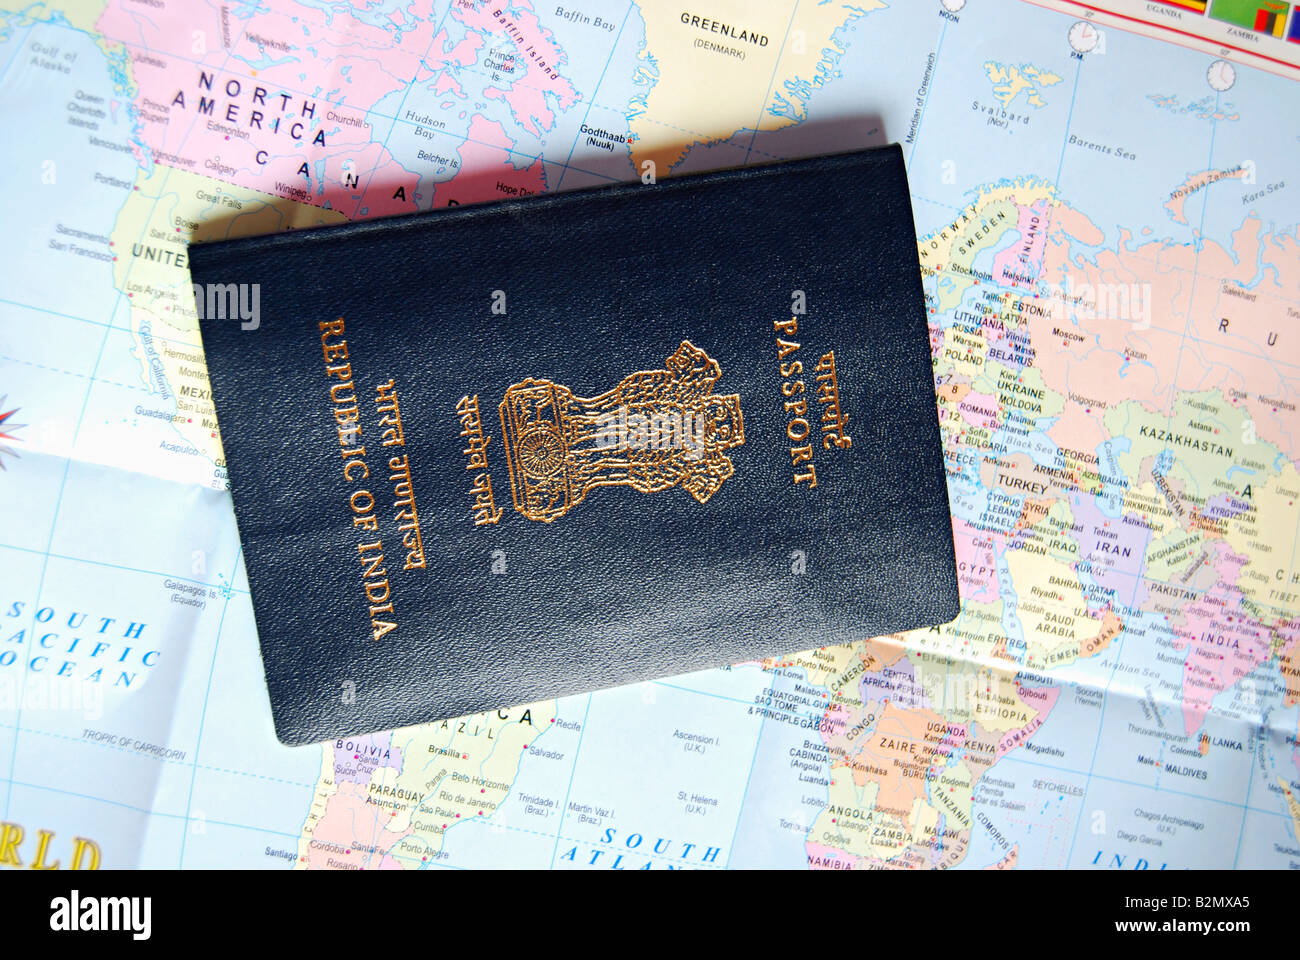 Indian passport placed on top of world map stock photo 18899389 alamy indian passport placed on top of world map gumiabroncs Images